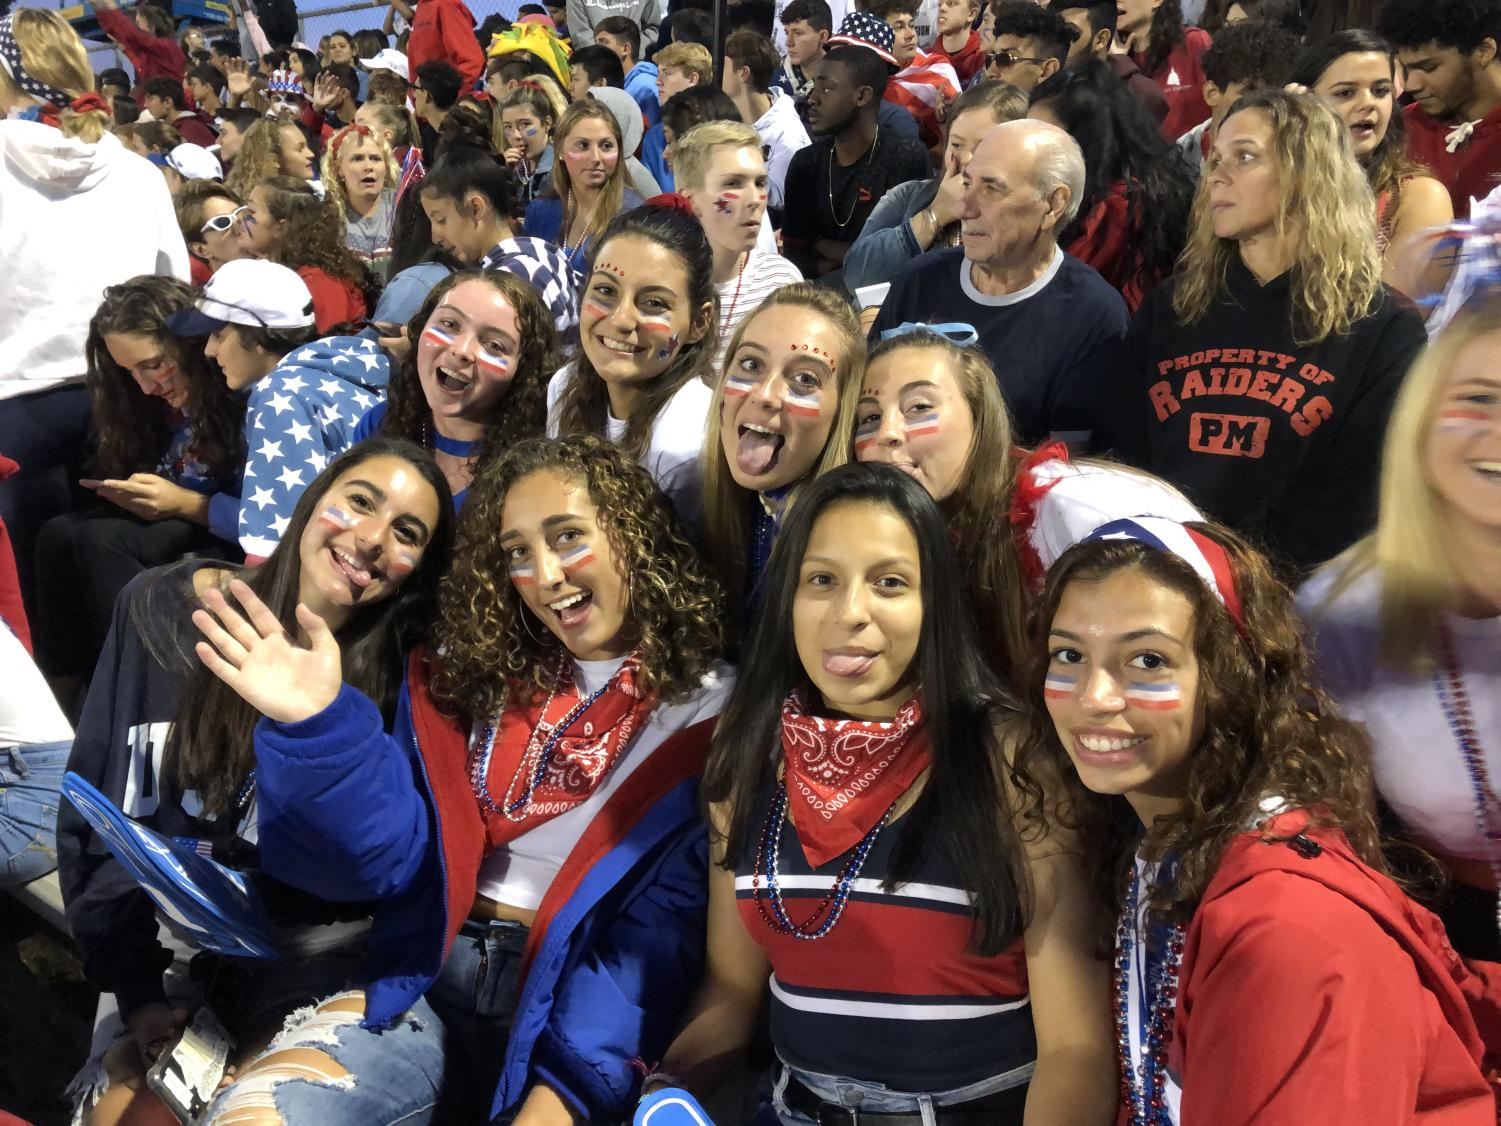 Bottom then top left to right Seniors  (Jessica Panzarino, Shannon Donnelly, Brianna Perez, Makayla Mateo, Stephanie Sheridan, Madison Wyatt, Olivia Hofer and Ana Seifert) showing school spirit in red white and blue at the first themed football game.